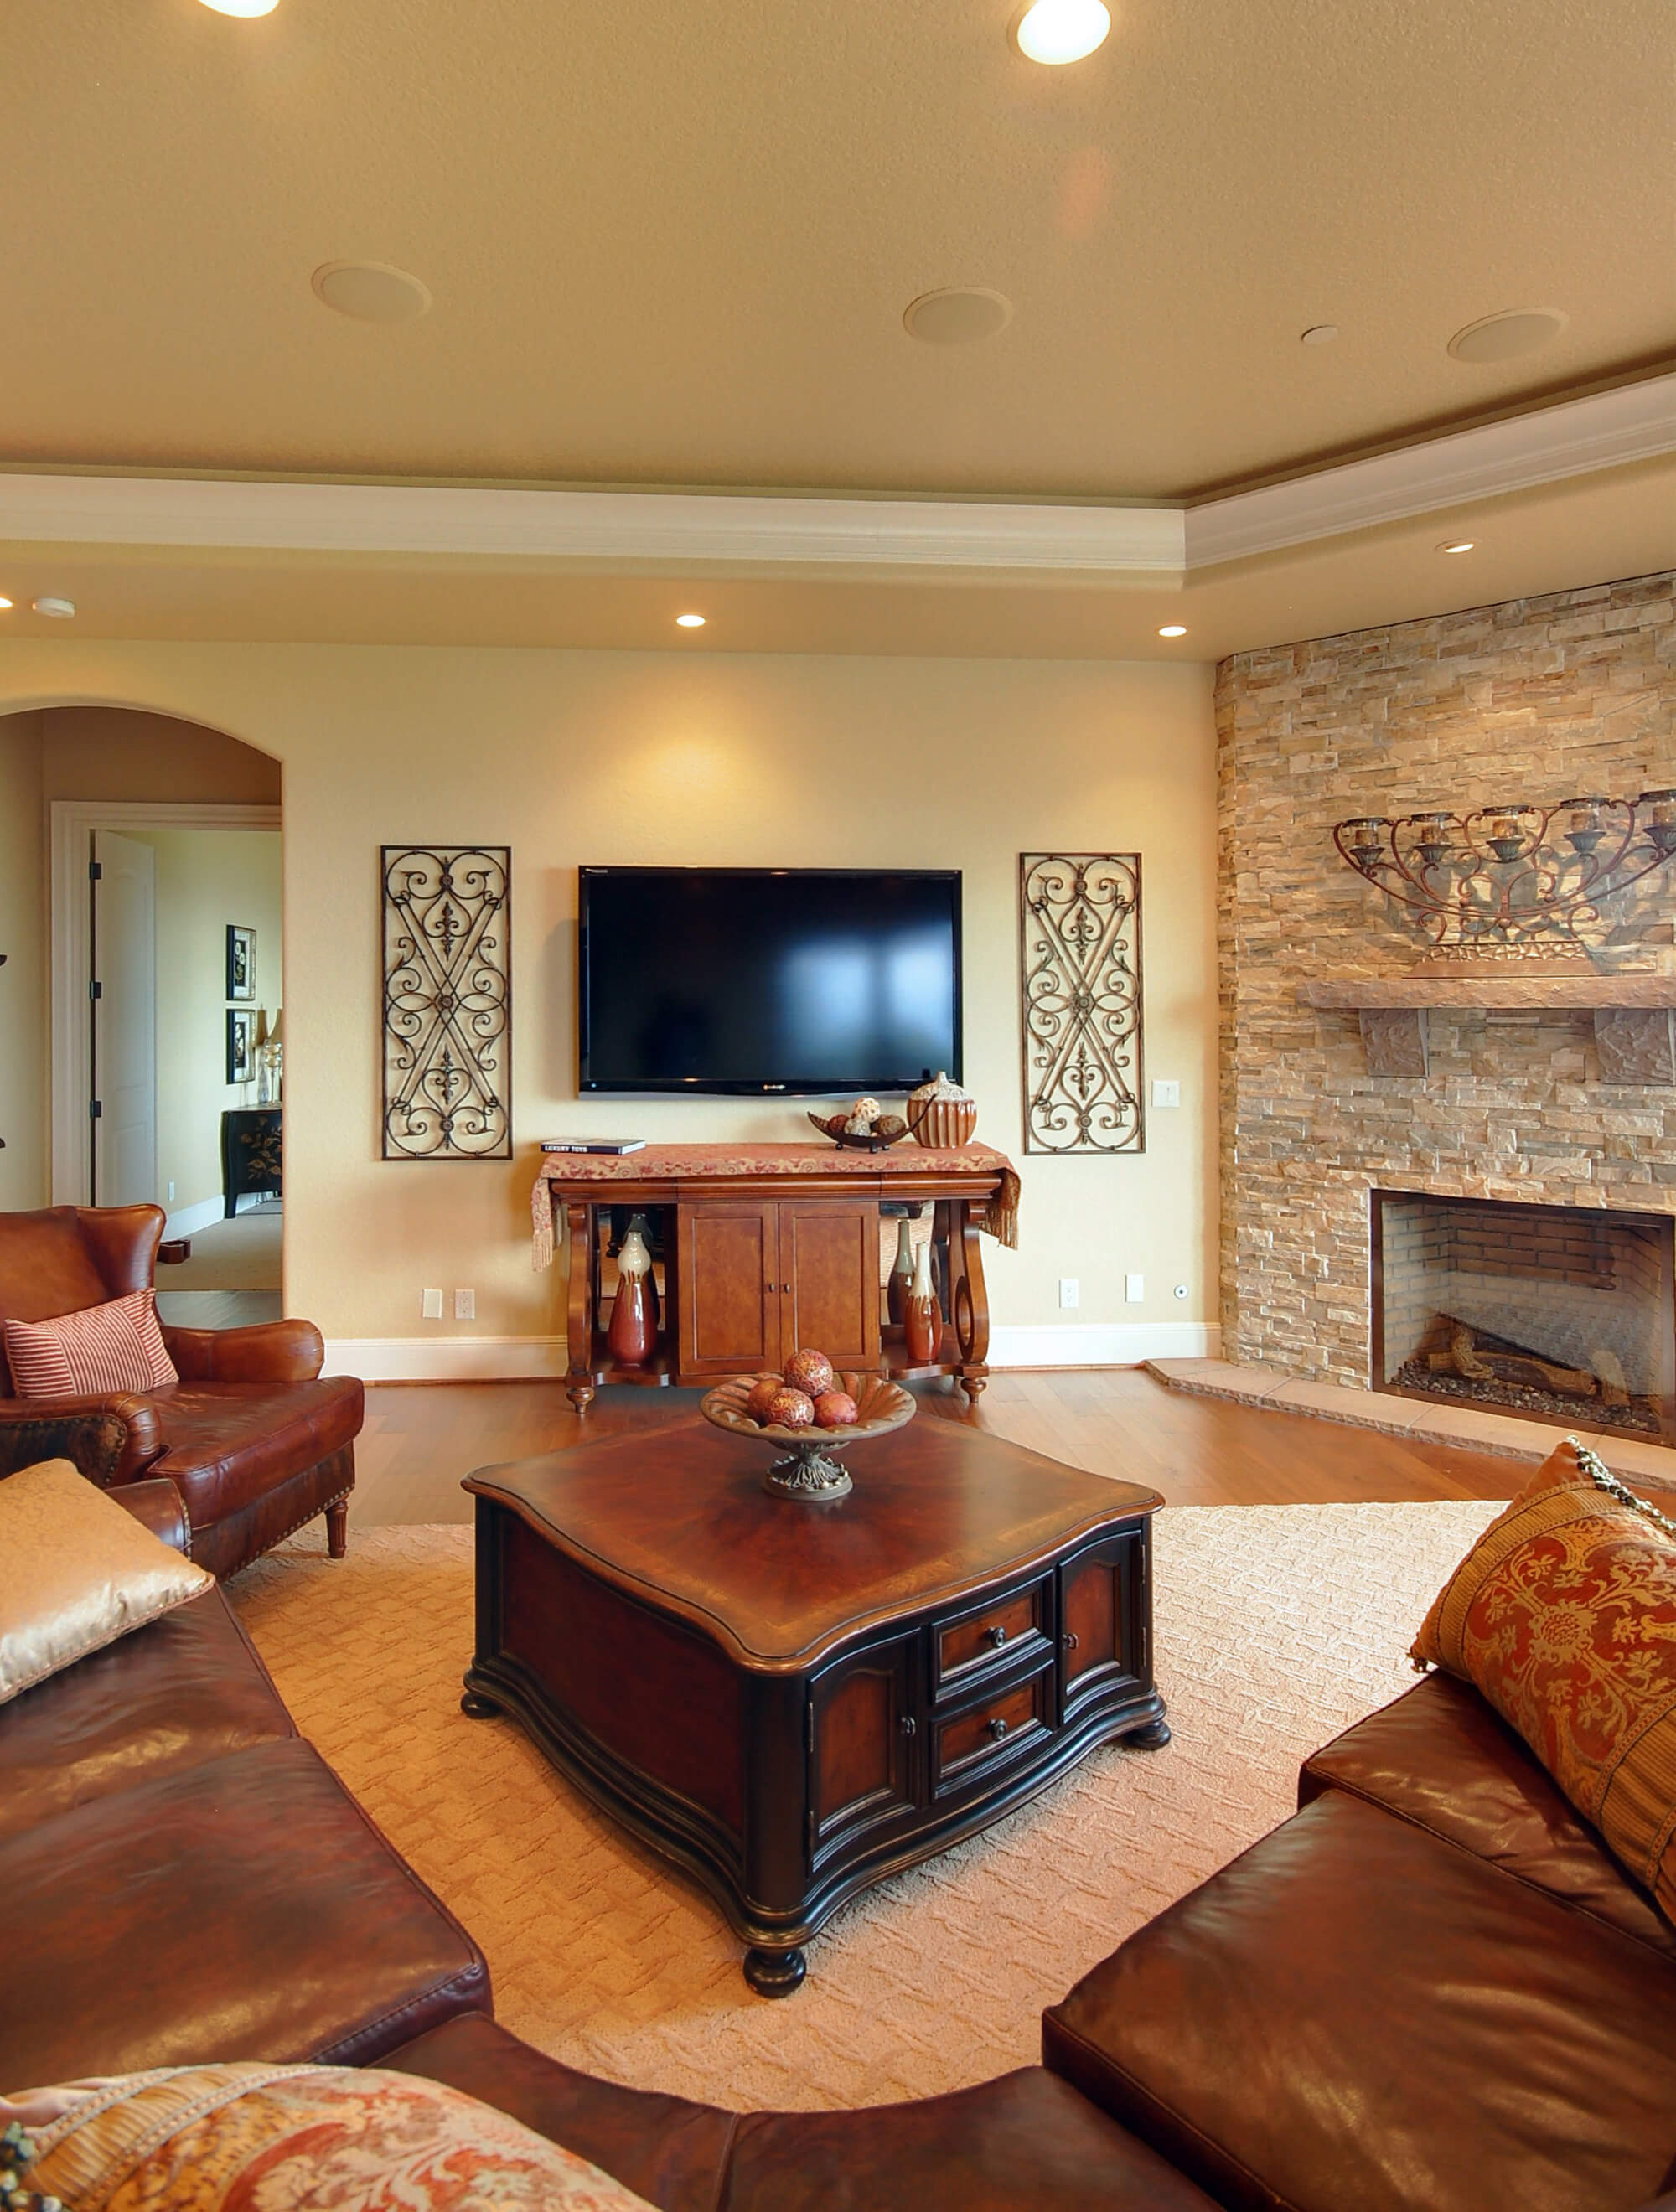 This southwestern style living room has a corner fireplace with an enclosed hearth and a rustic wooden mantle. The stone facade is small stone tiles.